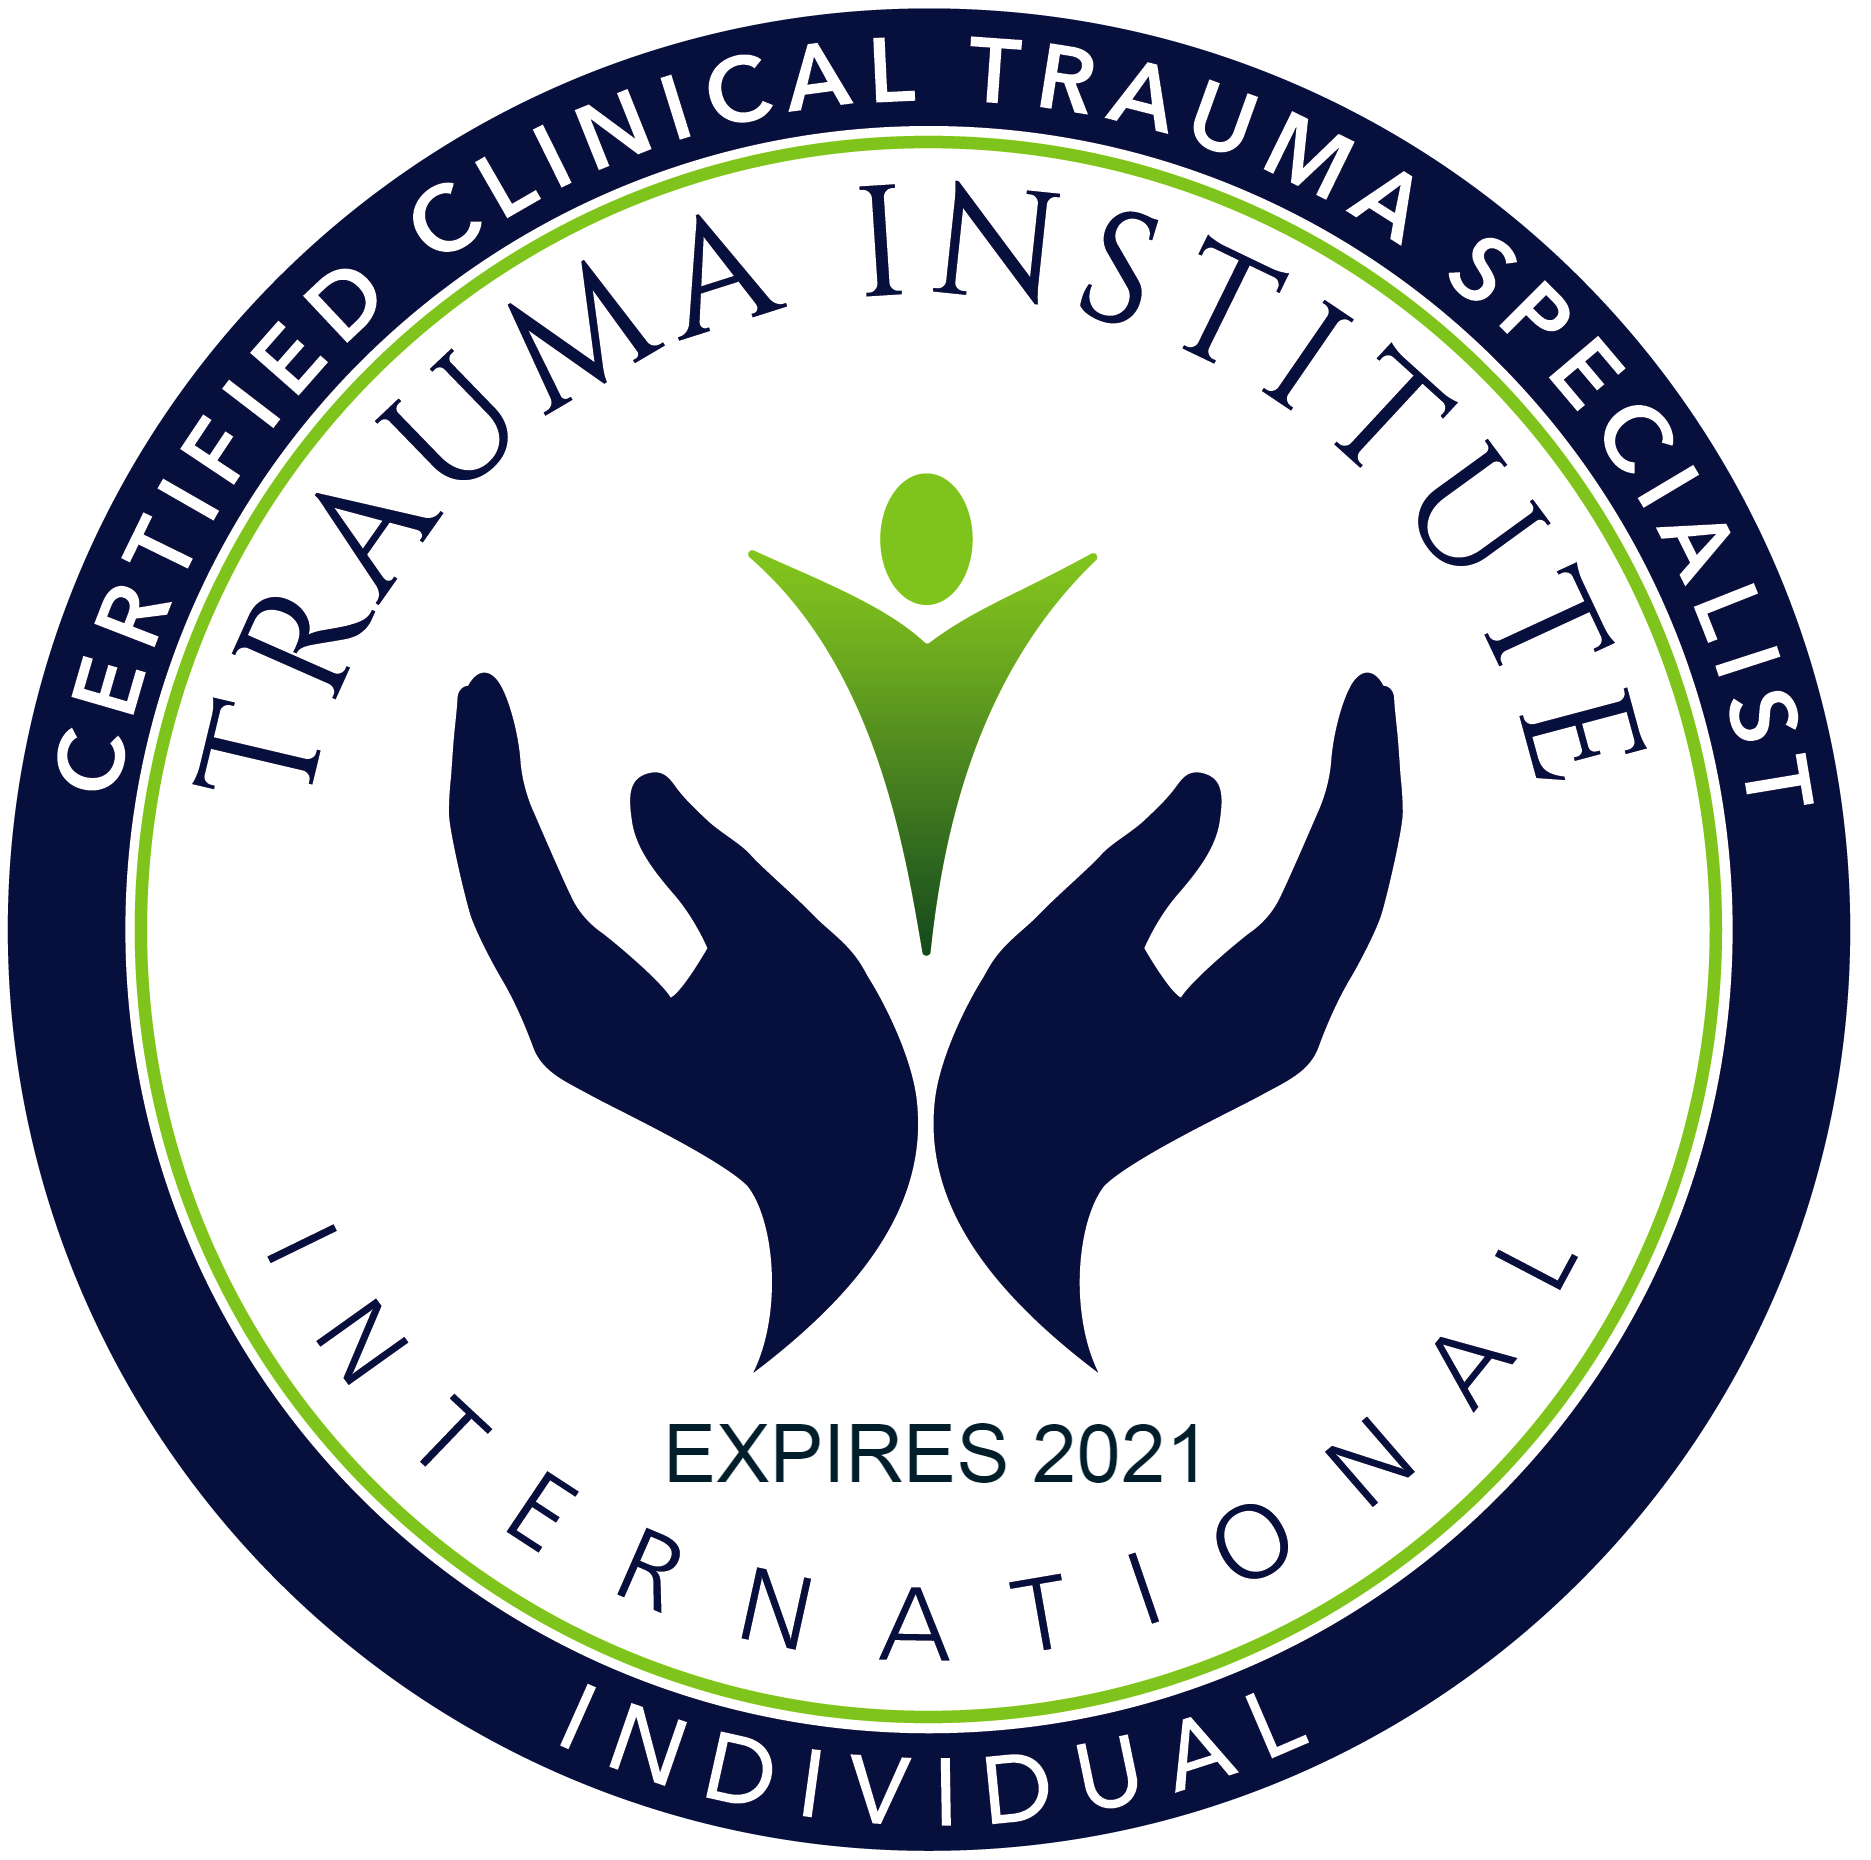 Trauma Institute International